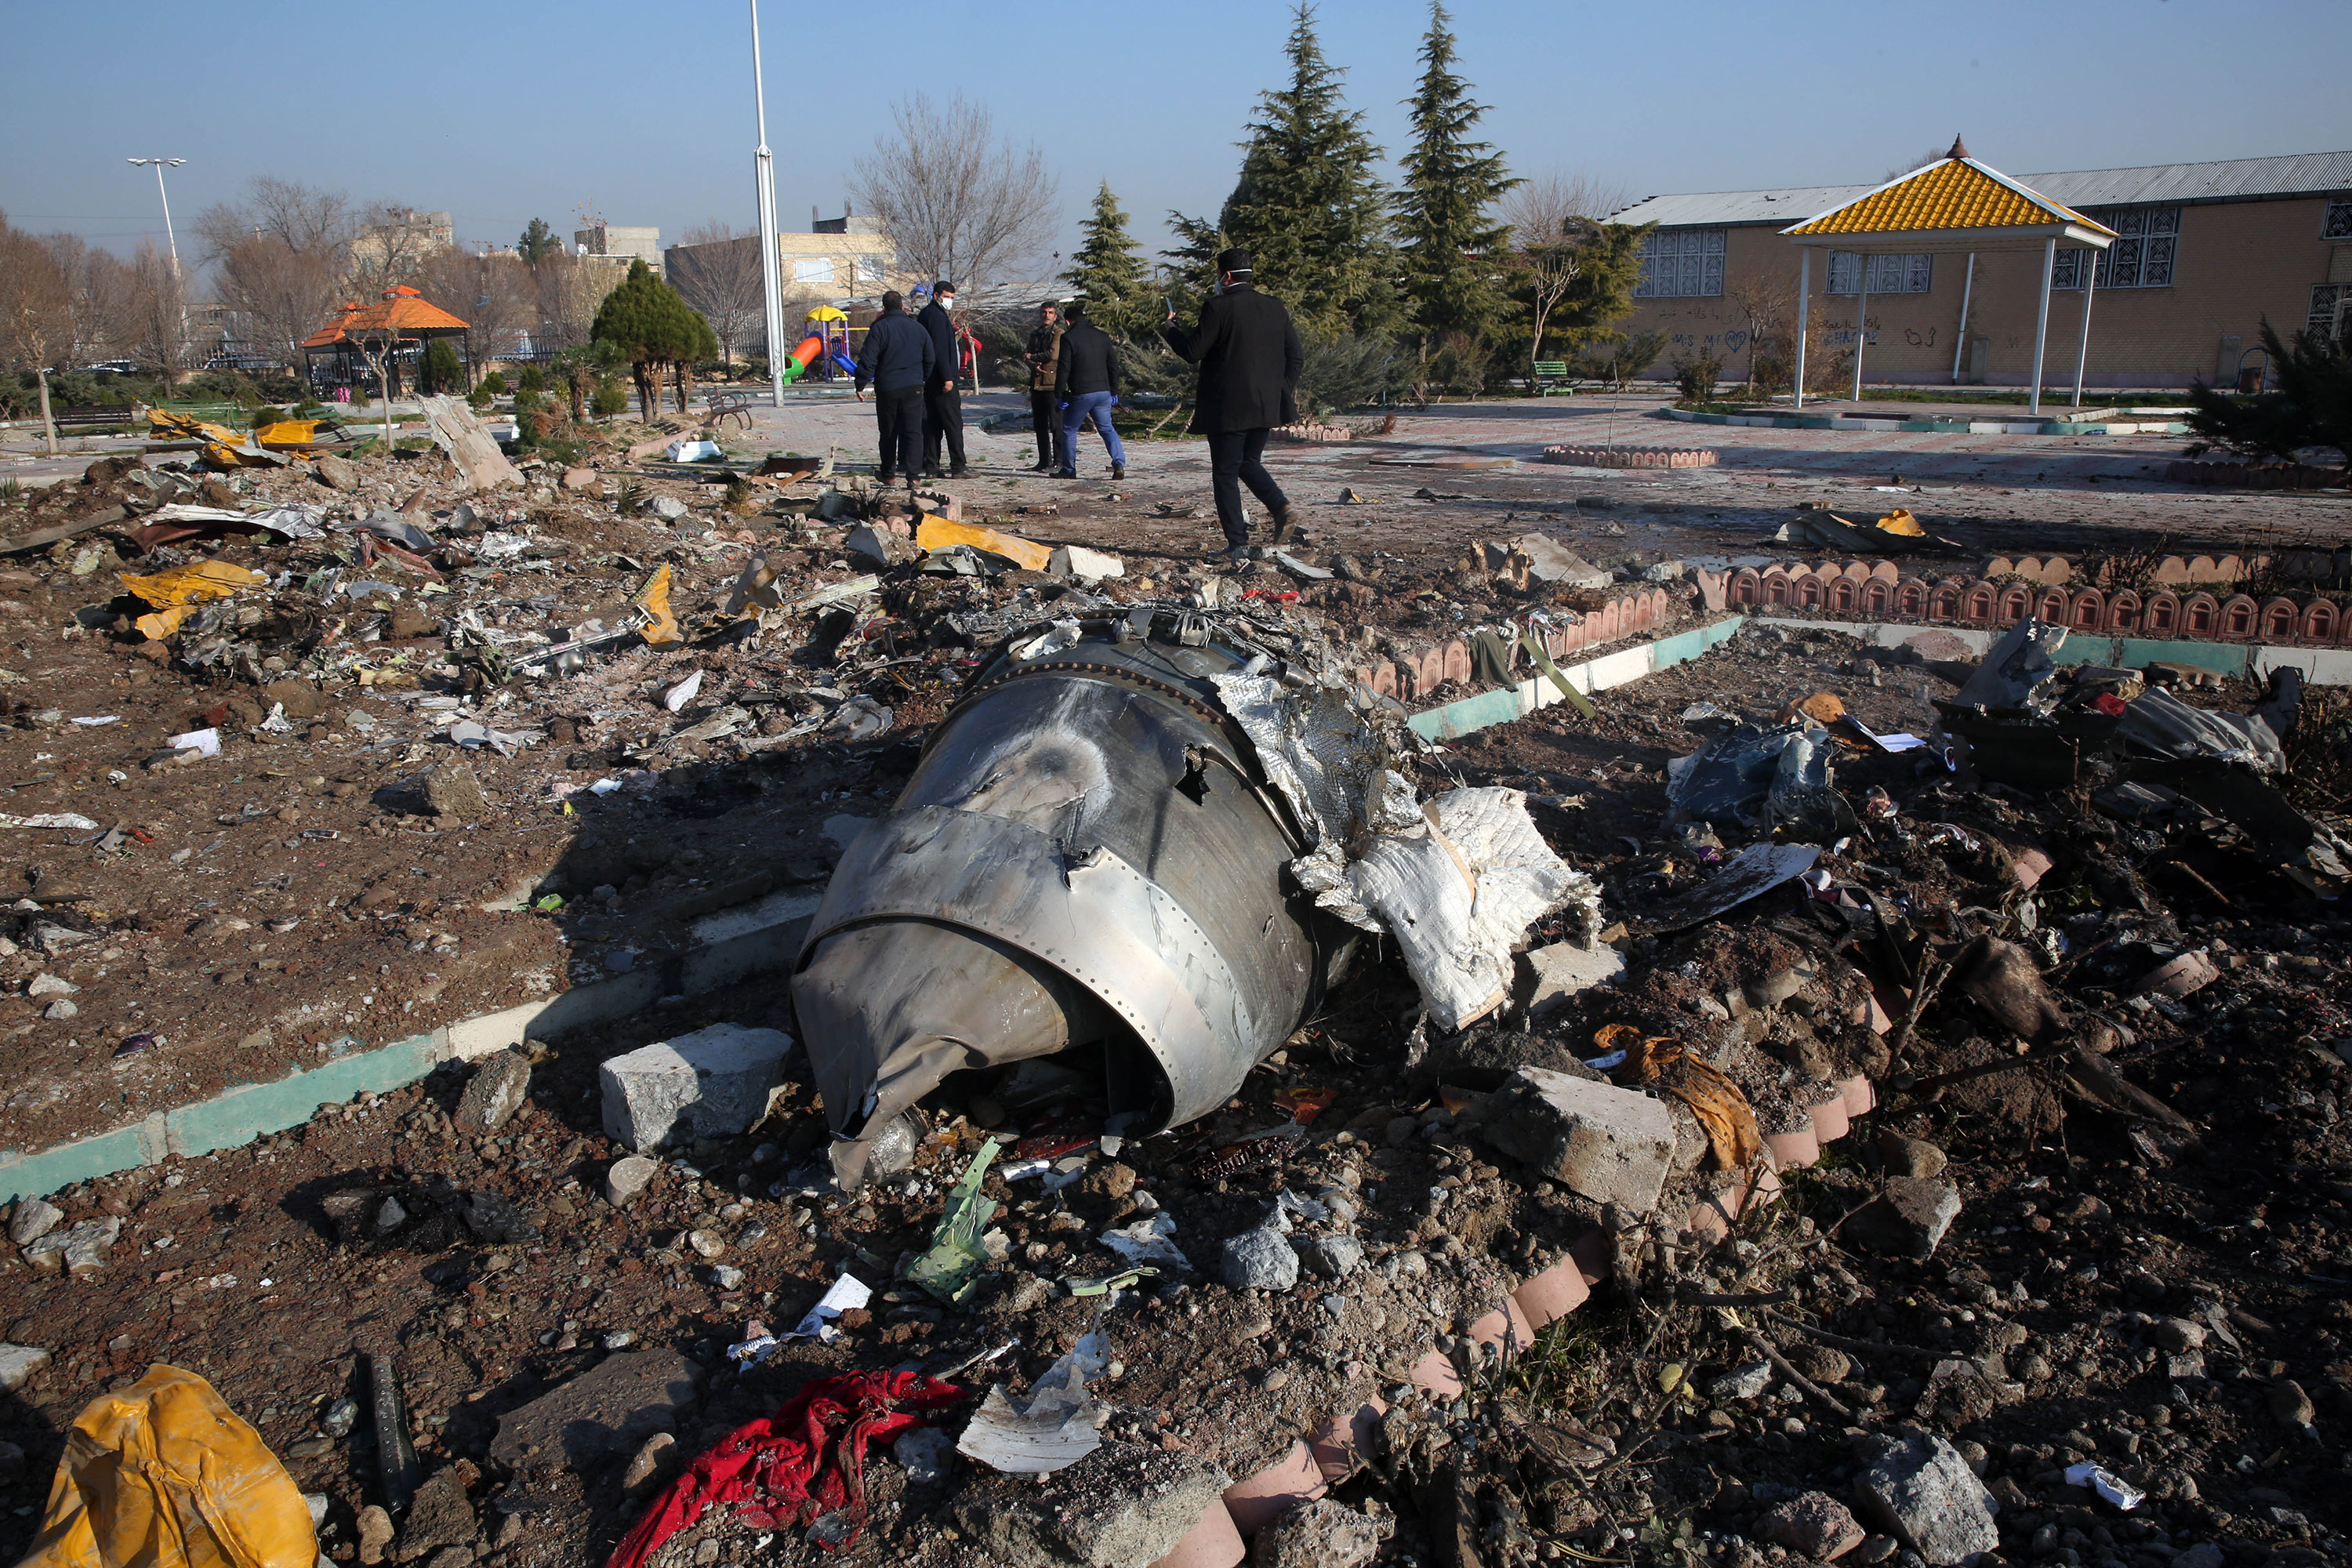 Rescue teams work amidst the debris from the plane crash near Imam Khomeini airport in Tehran, Iran, on January 8.